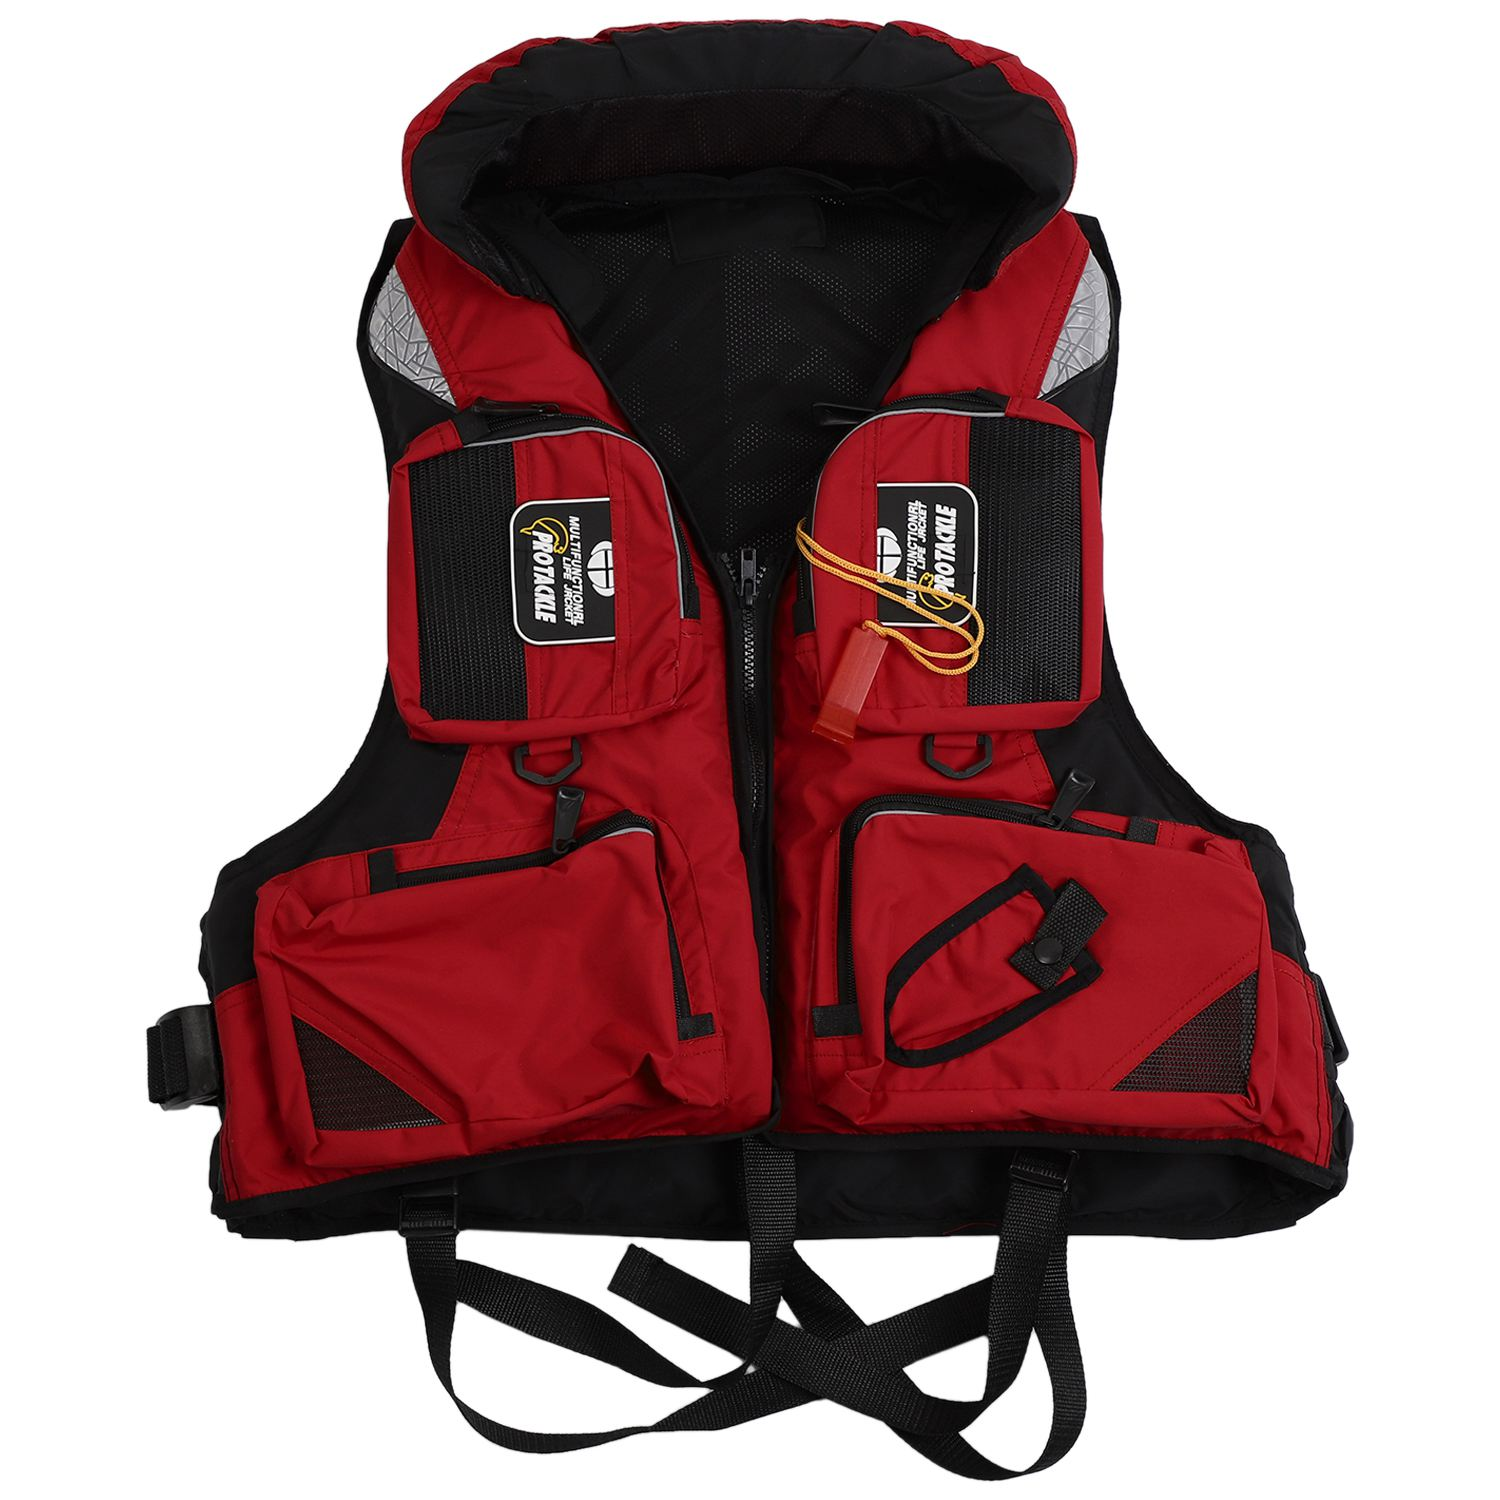 DSGS Adult Adjustable Buoyancy Aid Swimming Boating Sailing Fishing Kayak Life Jacket Vest PreserversDSGS Adult Adjustable Buoyancy Aid Swimming Boating Sailing Fishing Kayak Life Jacket Vest Preservers